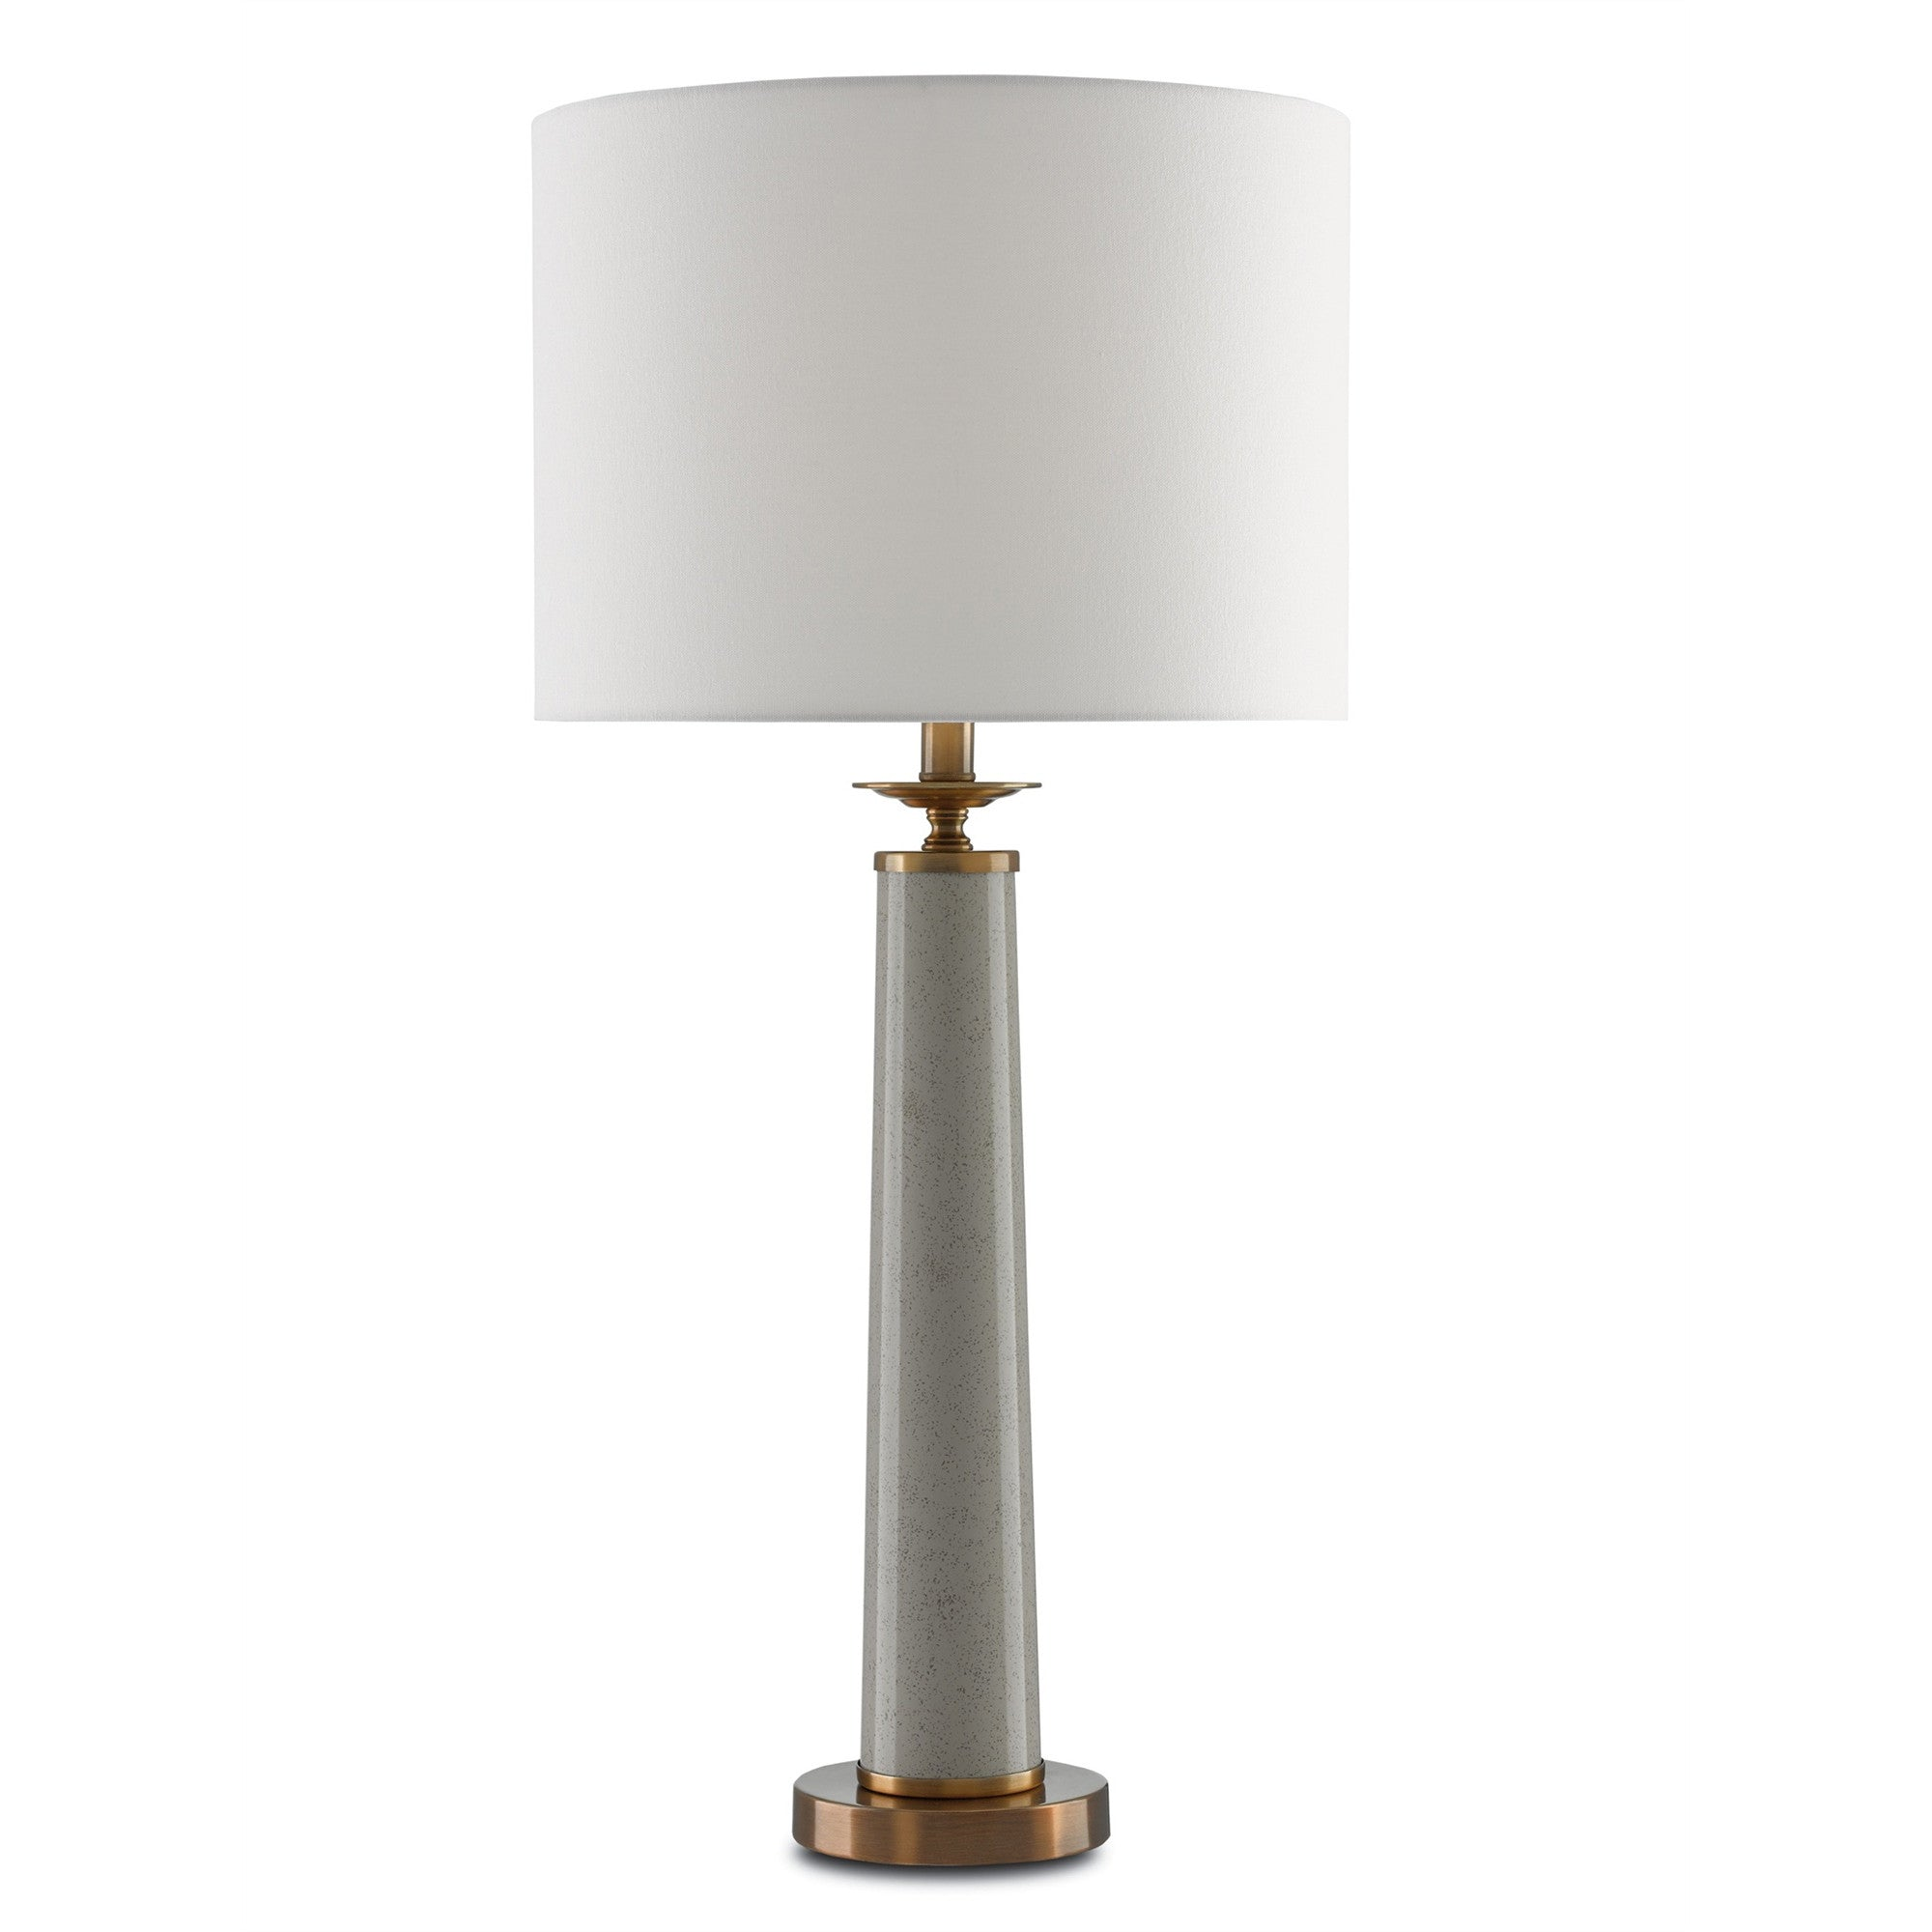 Currey and Co - Rhyme Table Lamp, Gray